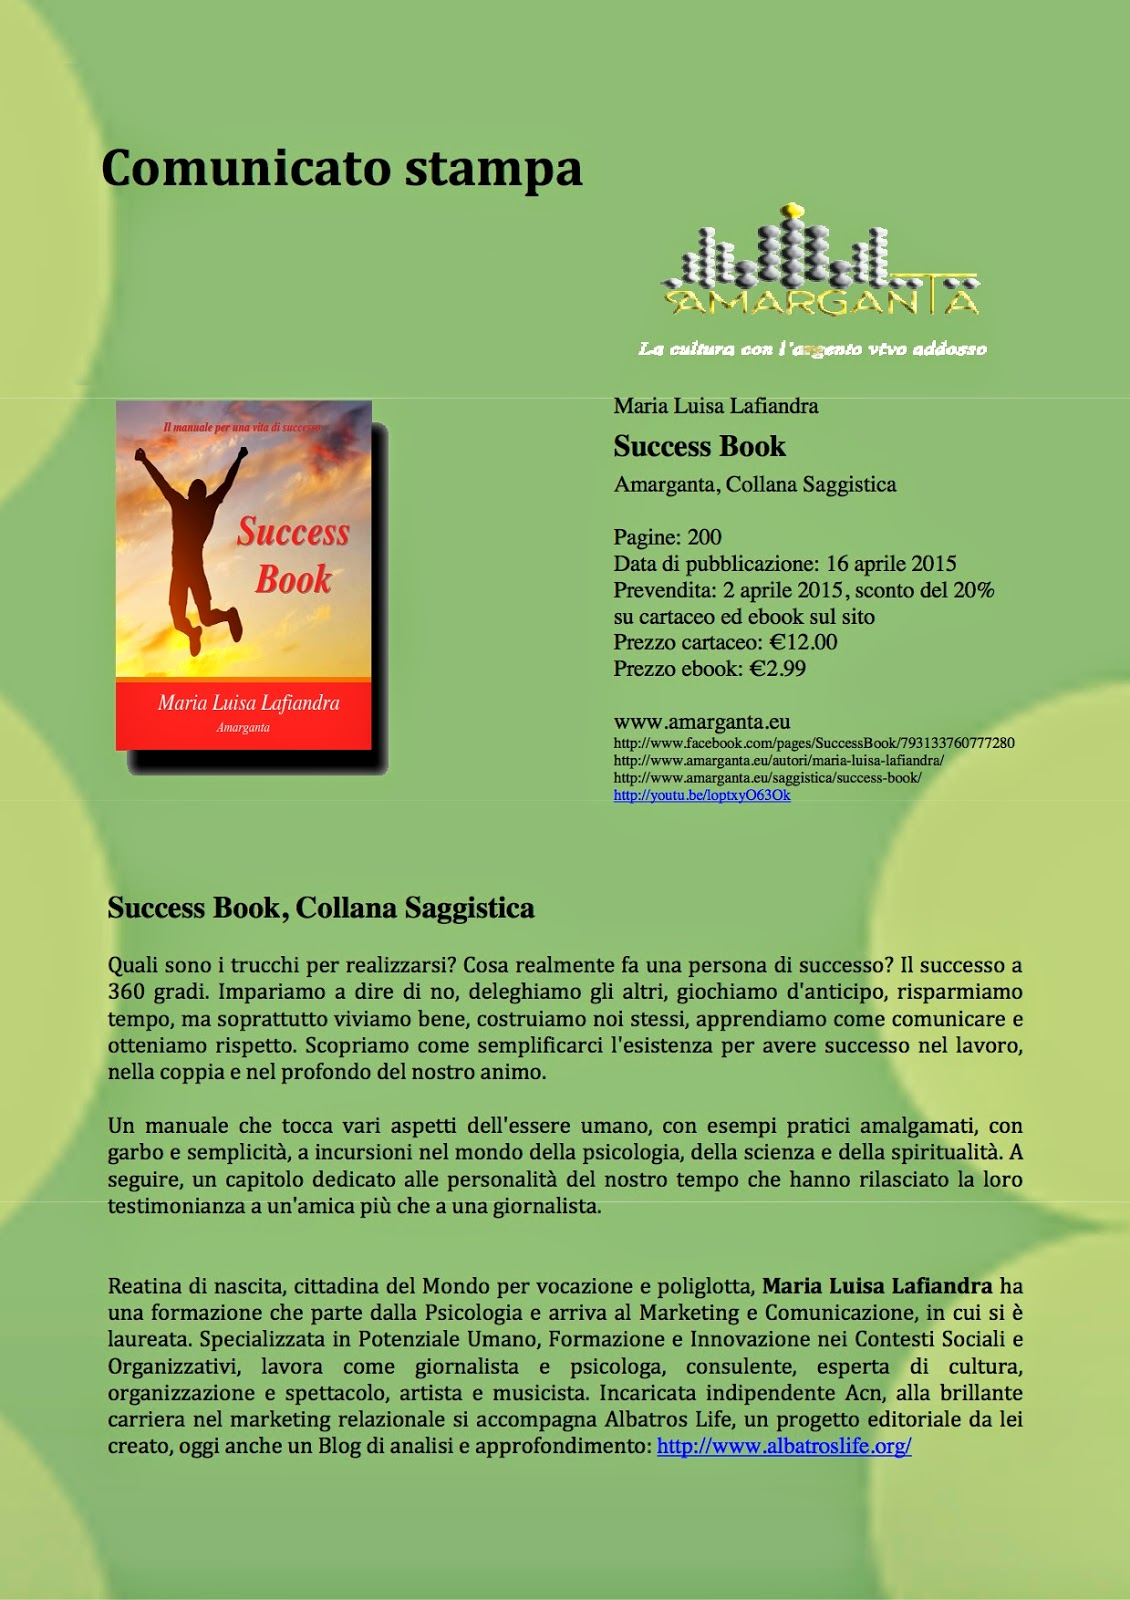 Success Book, di Maria Luisa Lafiandra